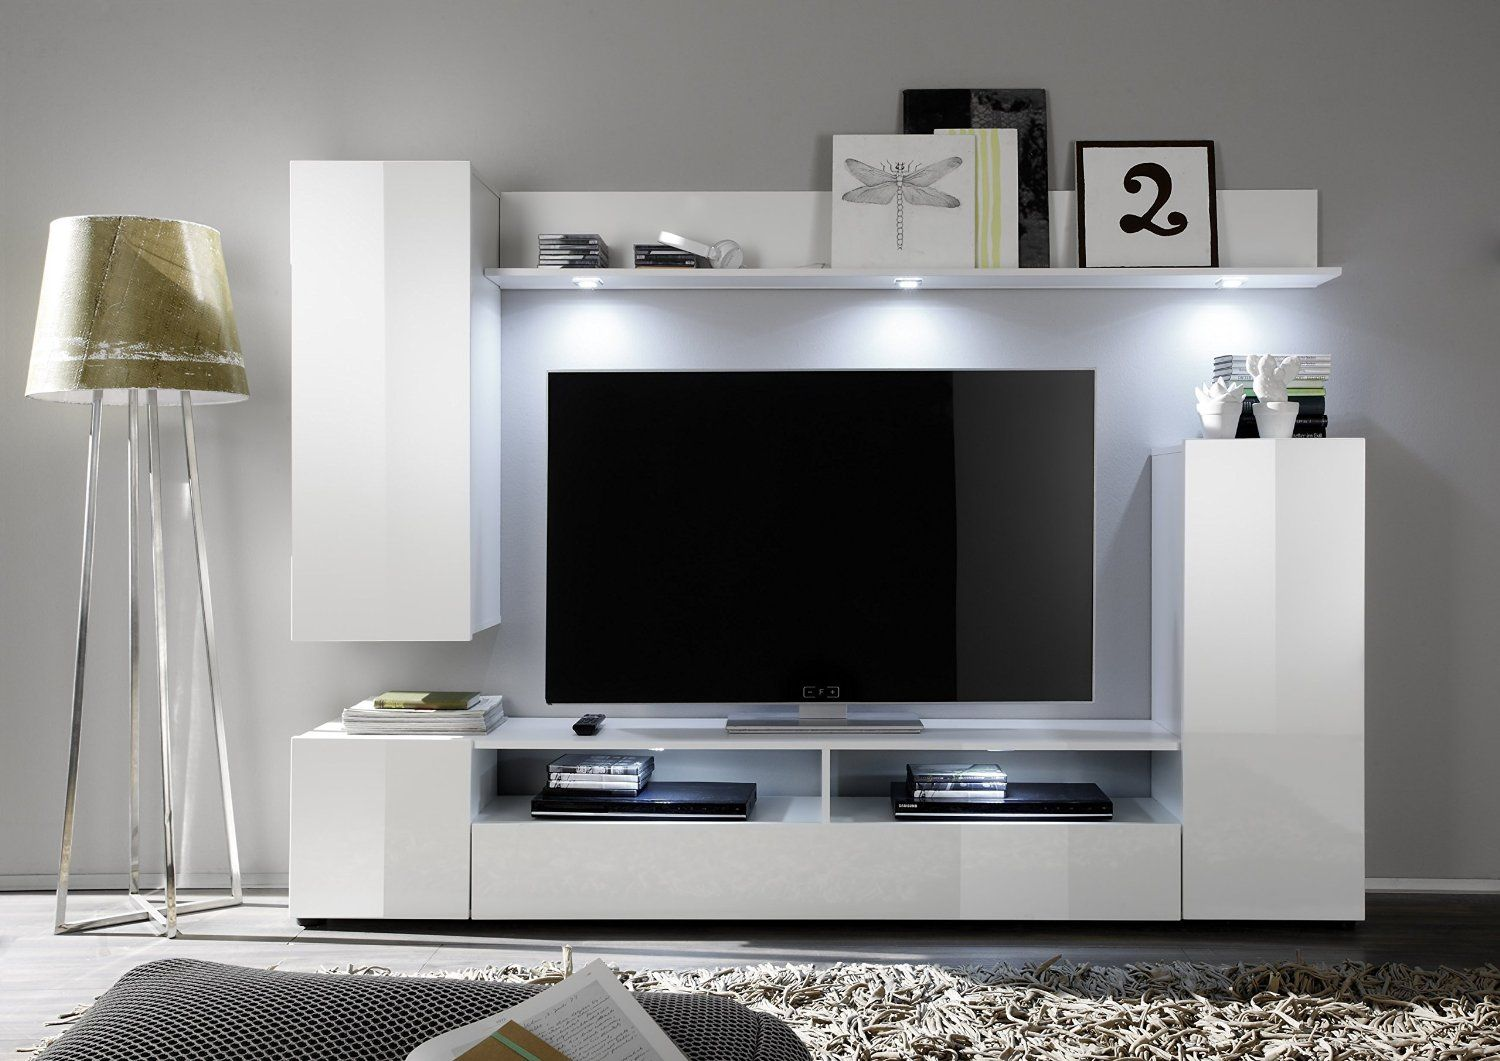 Furnline 1396 945 01 dos high gloss tv stand wall unit - High gloss living room furniture uk ...